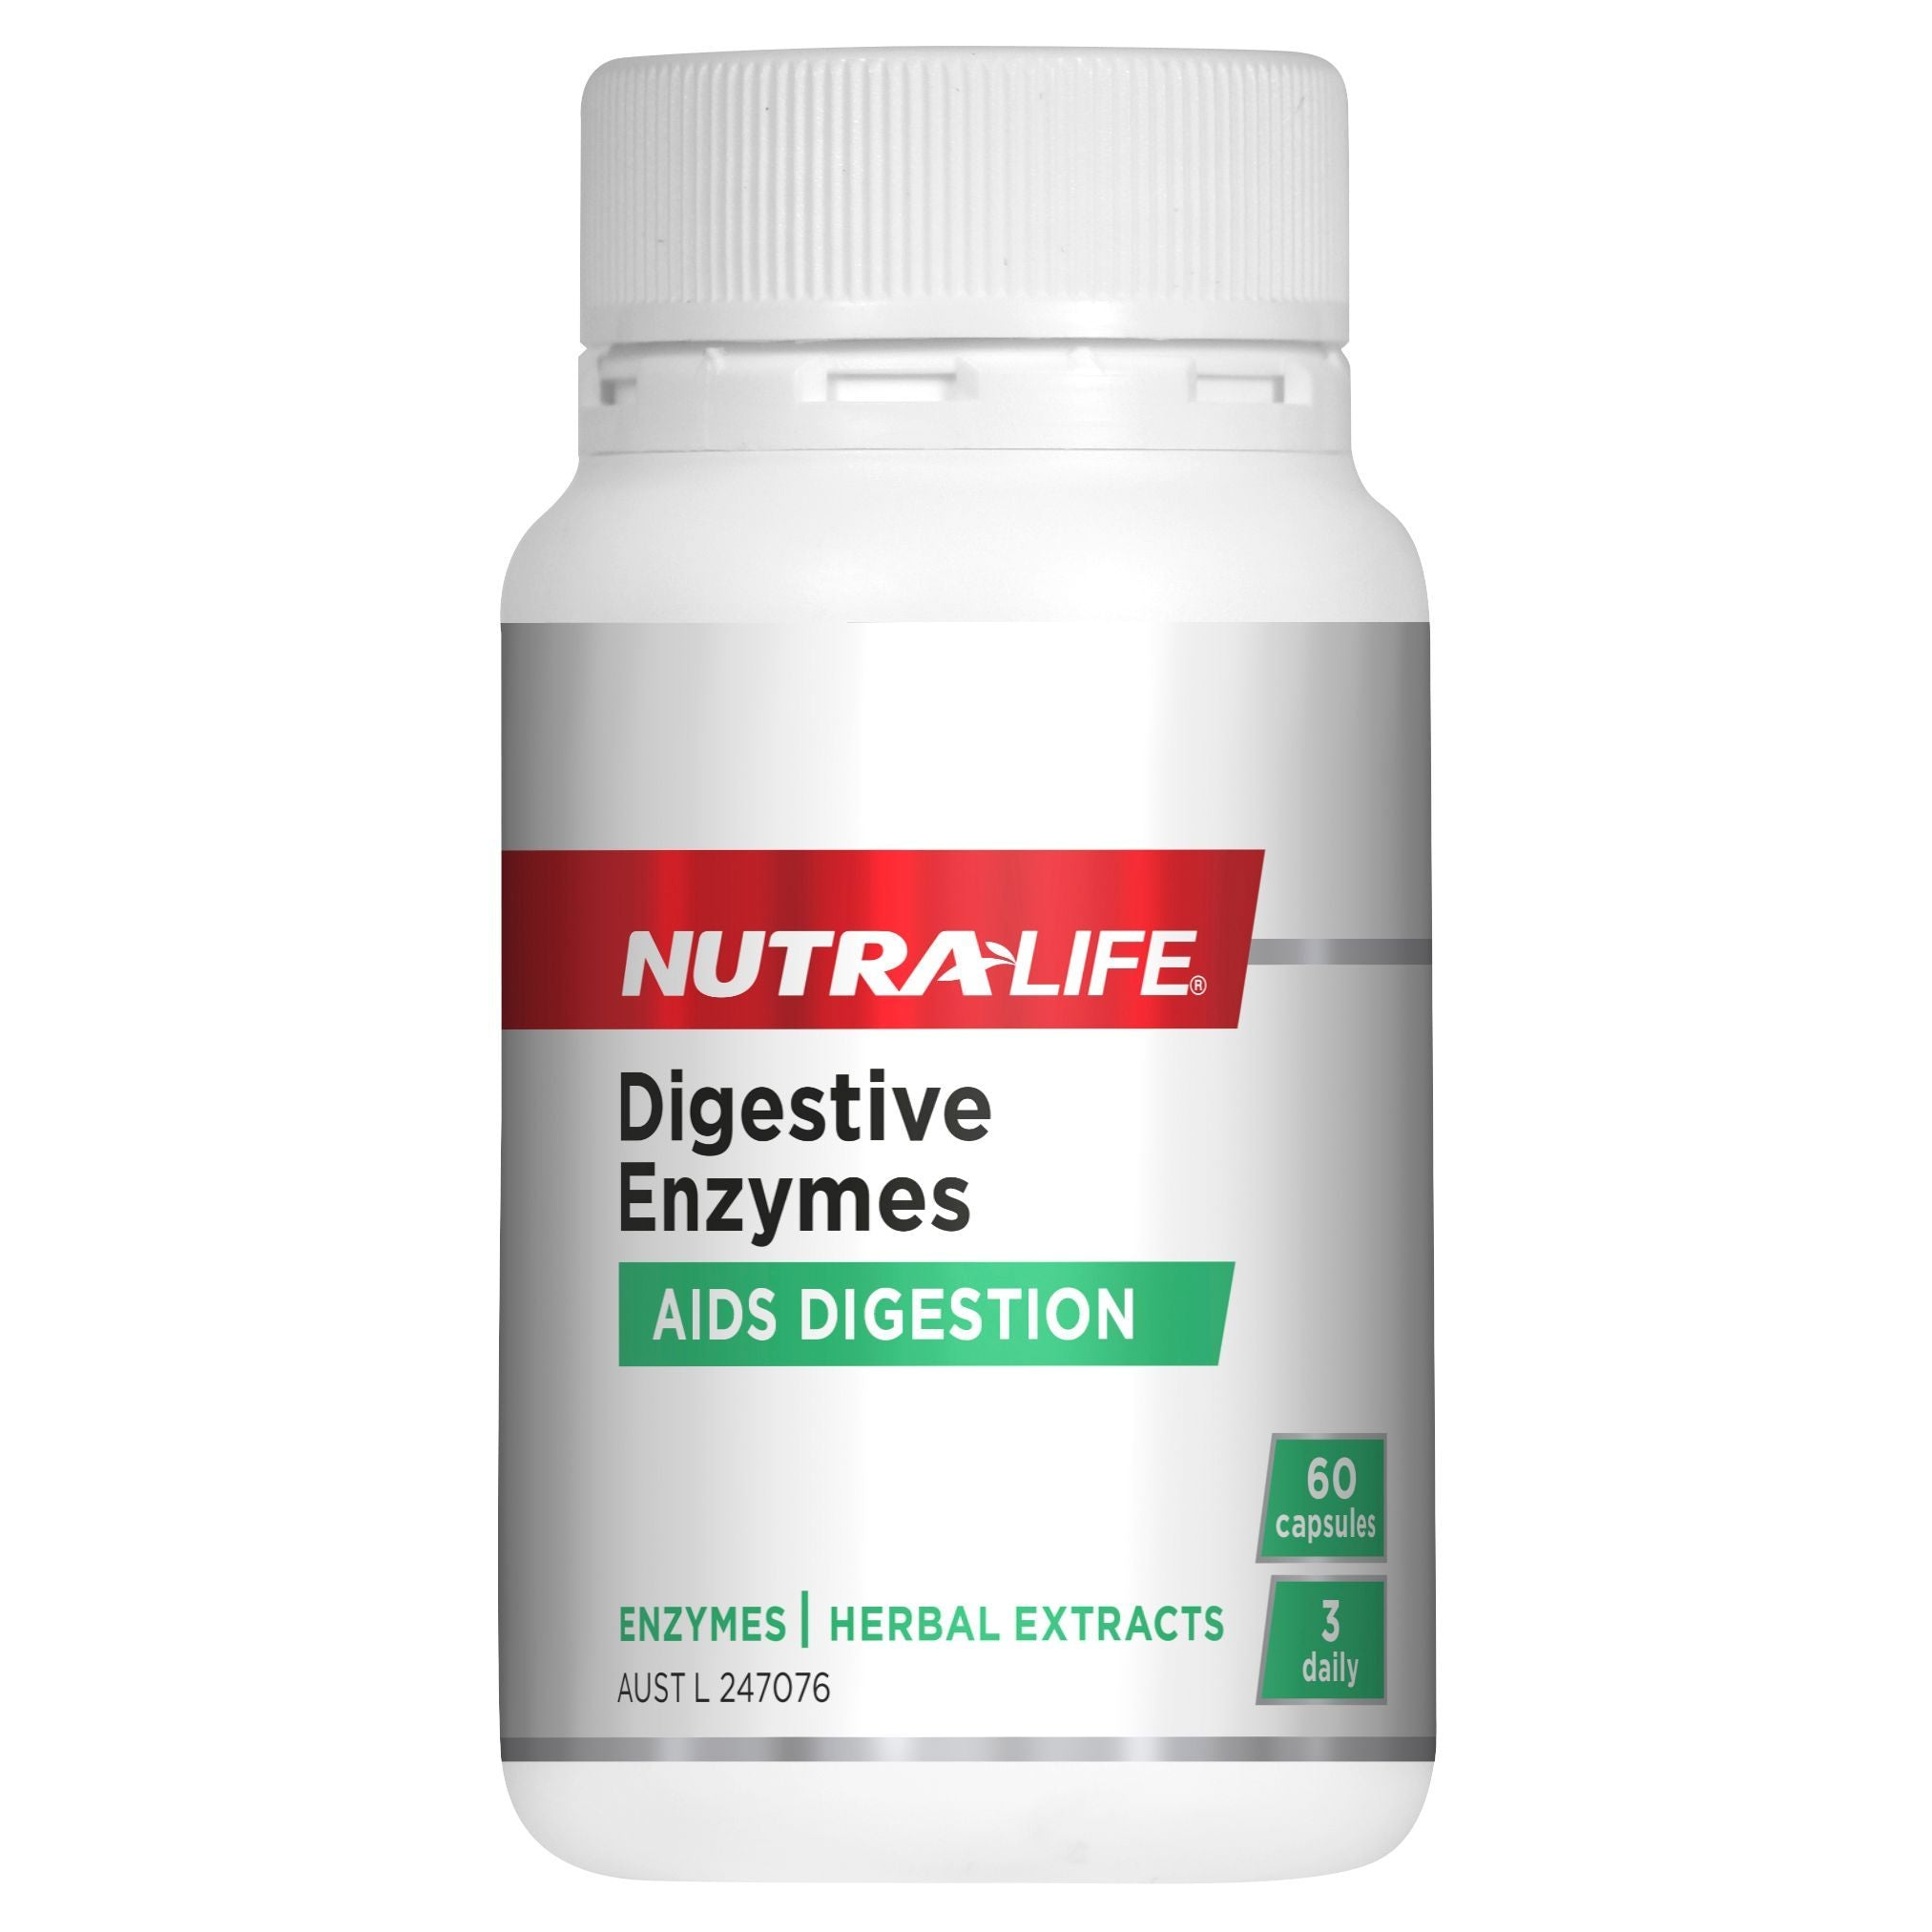 NUTRA-LIFE DIGESTIVE ENZYMES 60C